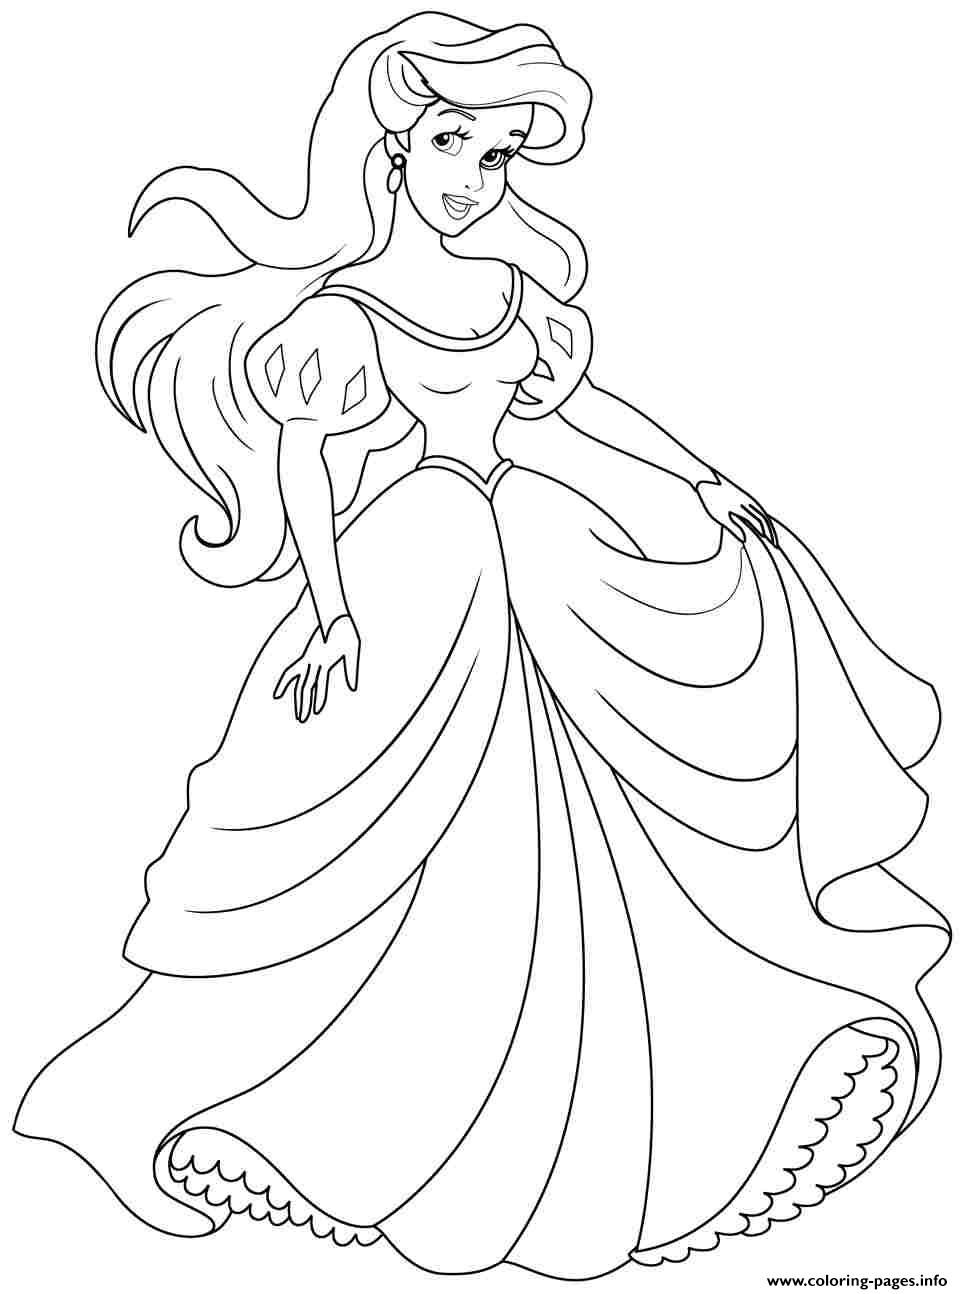 Pr princess coloring sheet - Print Princess Ariel Human Coloring Pages